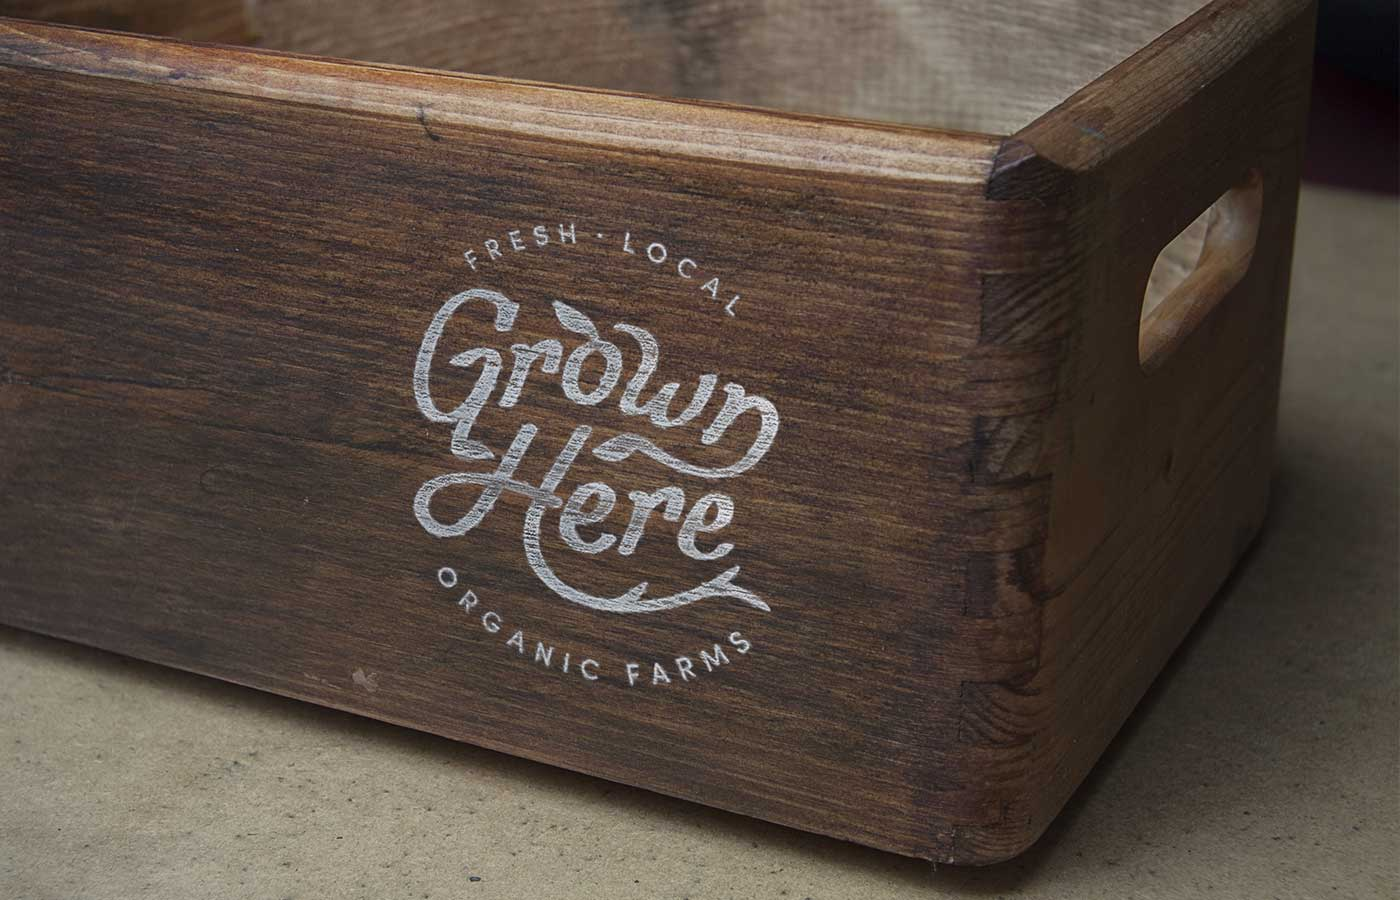 covetdesign_logo-design_branding_package-design_graphic-design_vancouver_work_wide_grownhere-crate